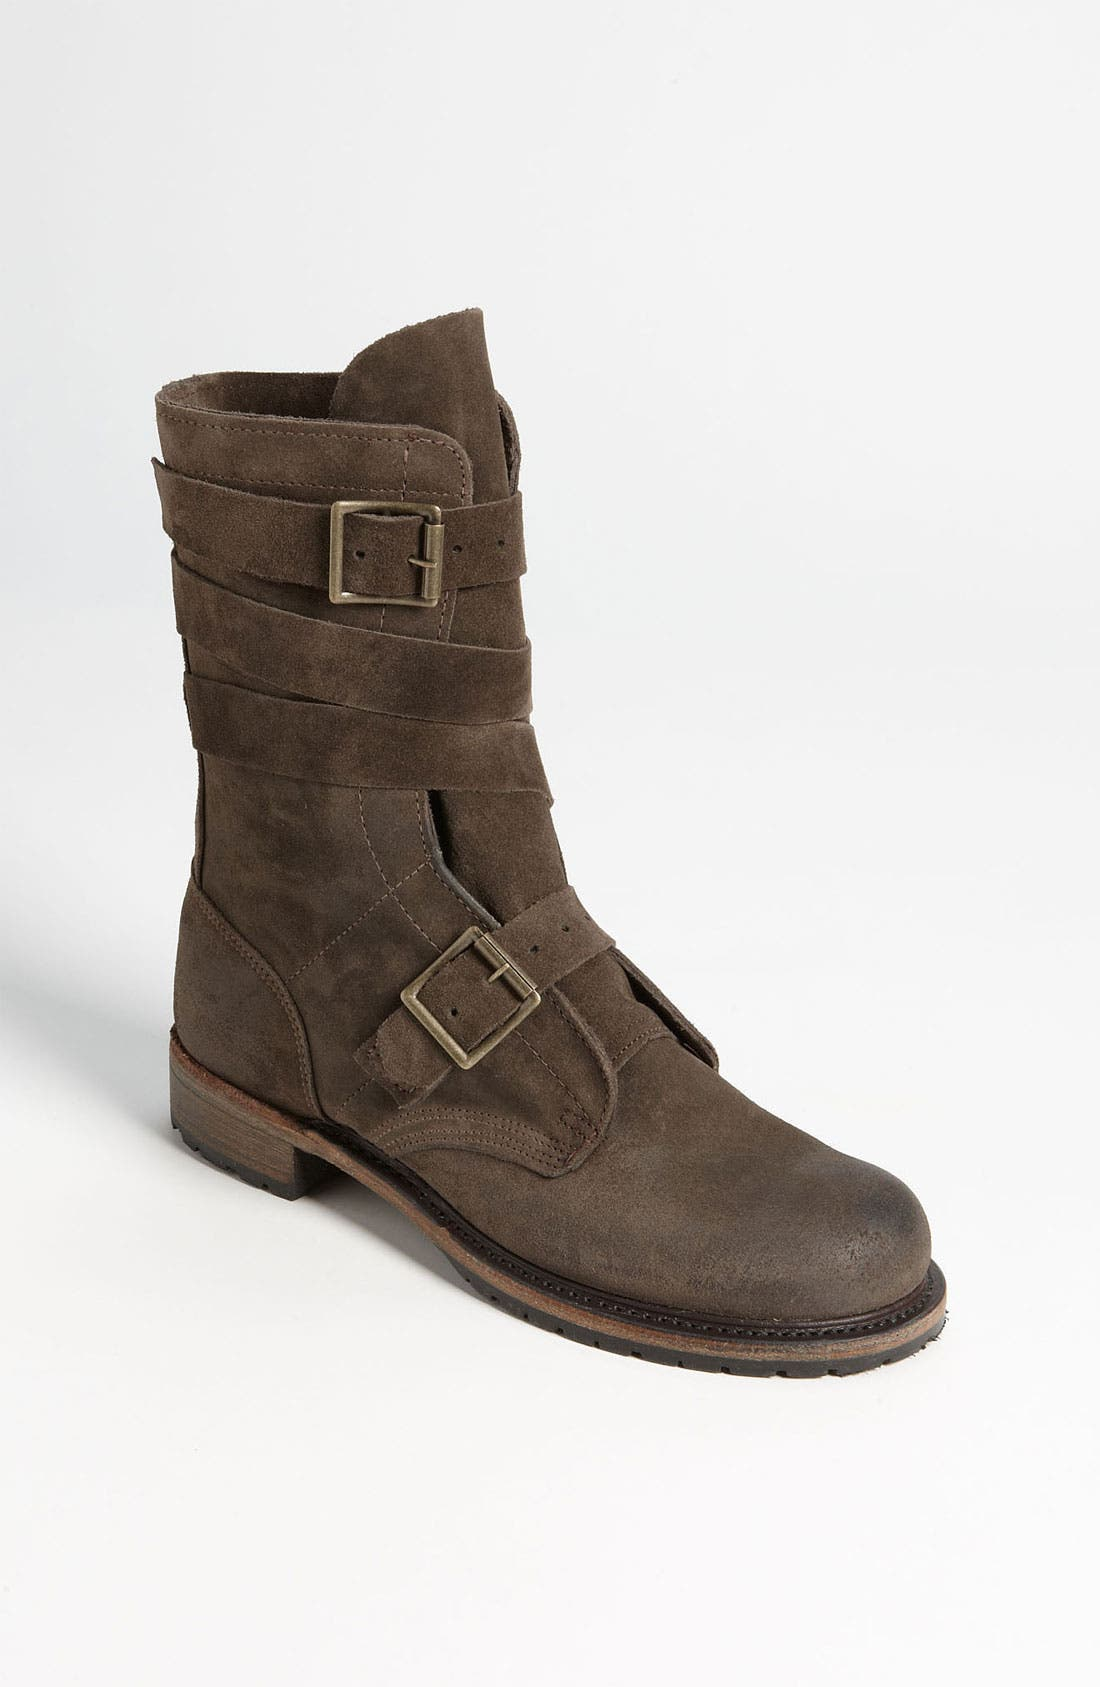 Alternate Image 1 Selected - Vintage Shoe Company 'Isaac' Boot (Online Only)